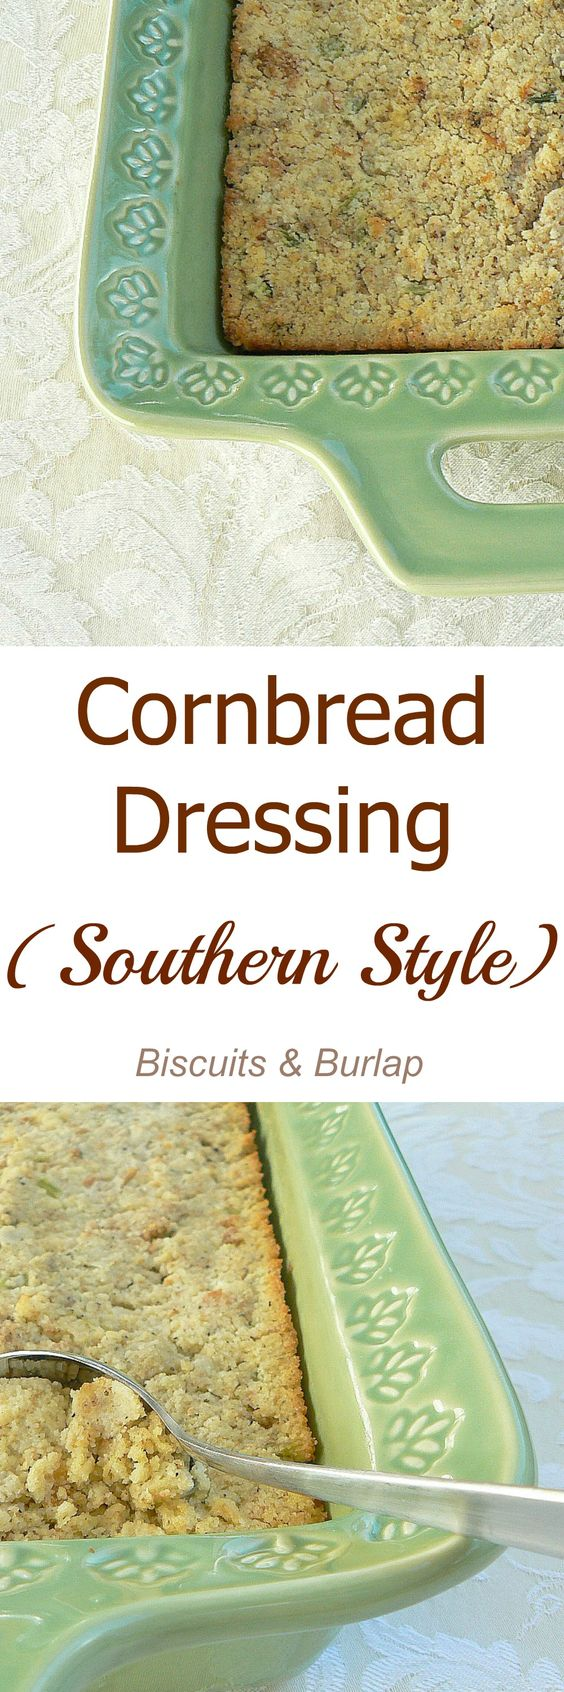 Traditional Southern Style Cornbread Dressing. It's easy - I promise!